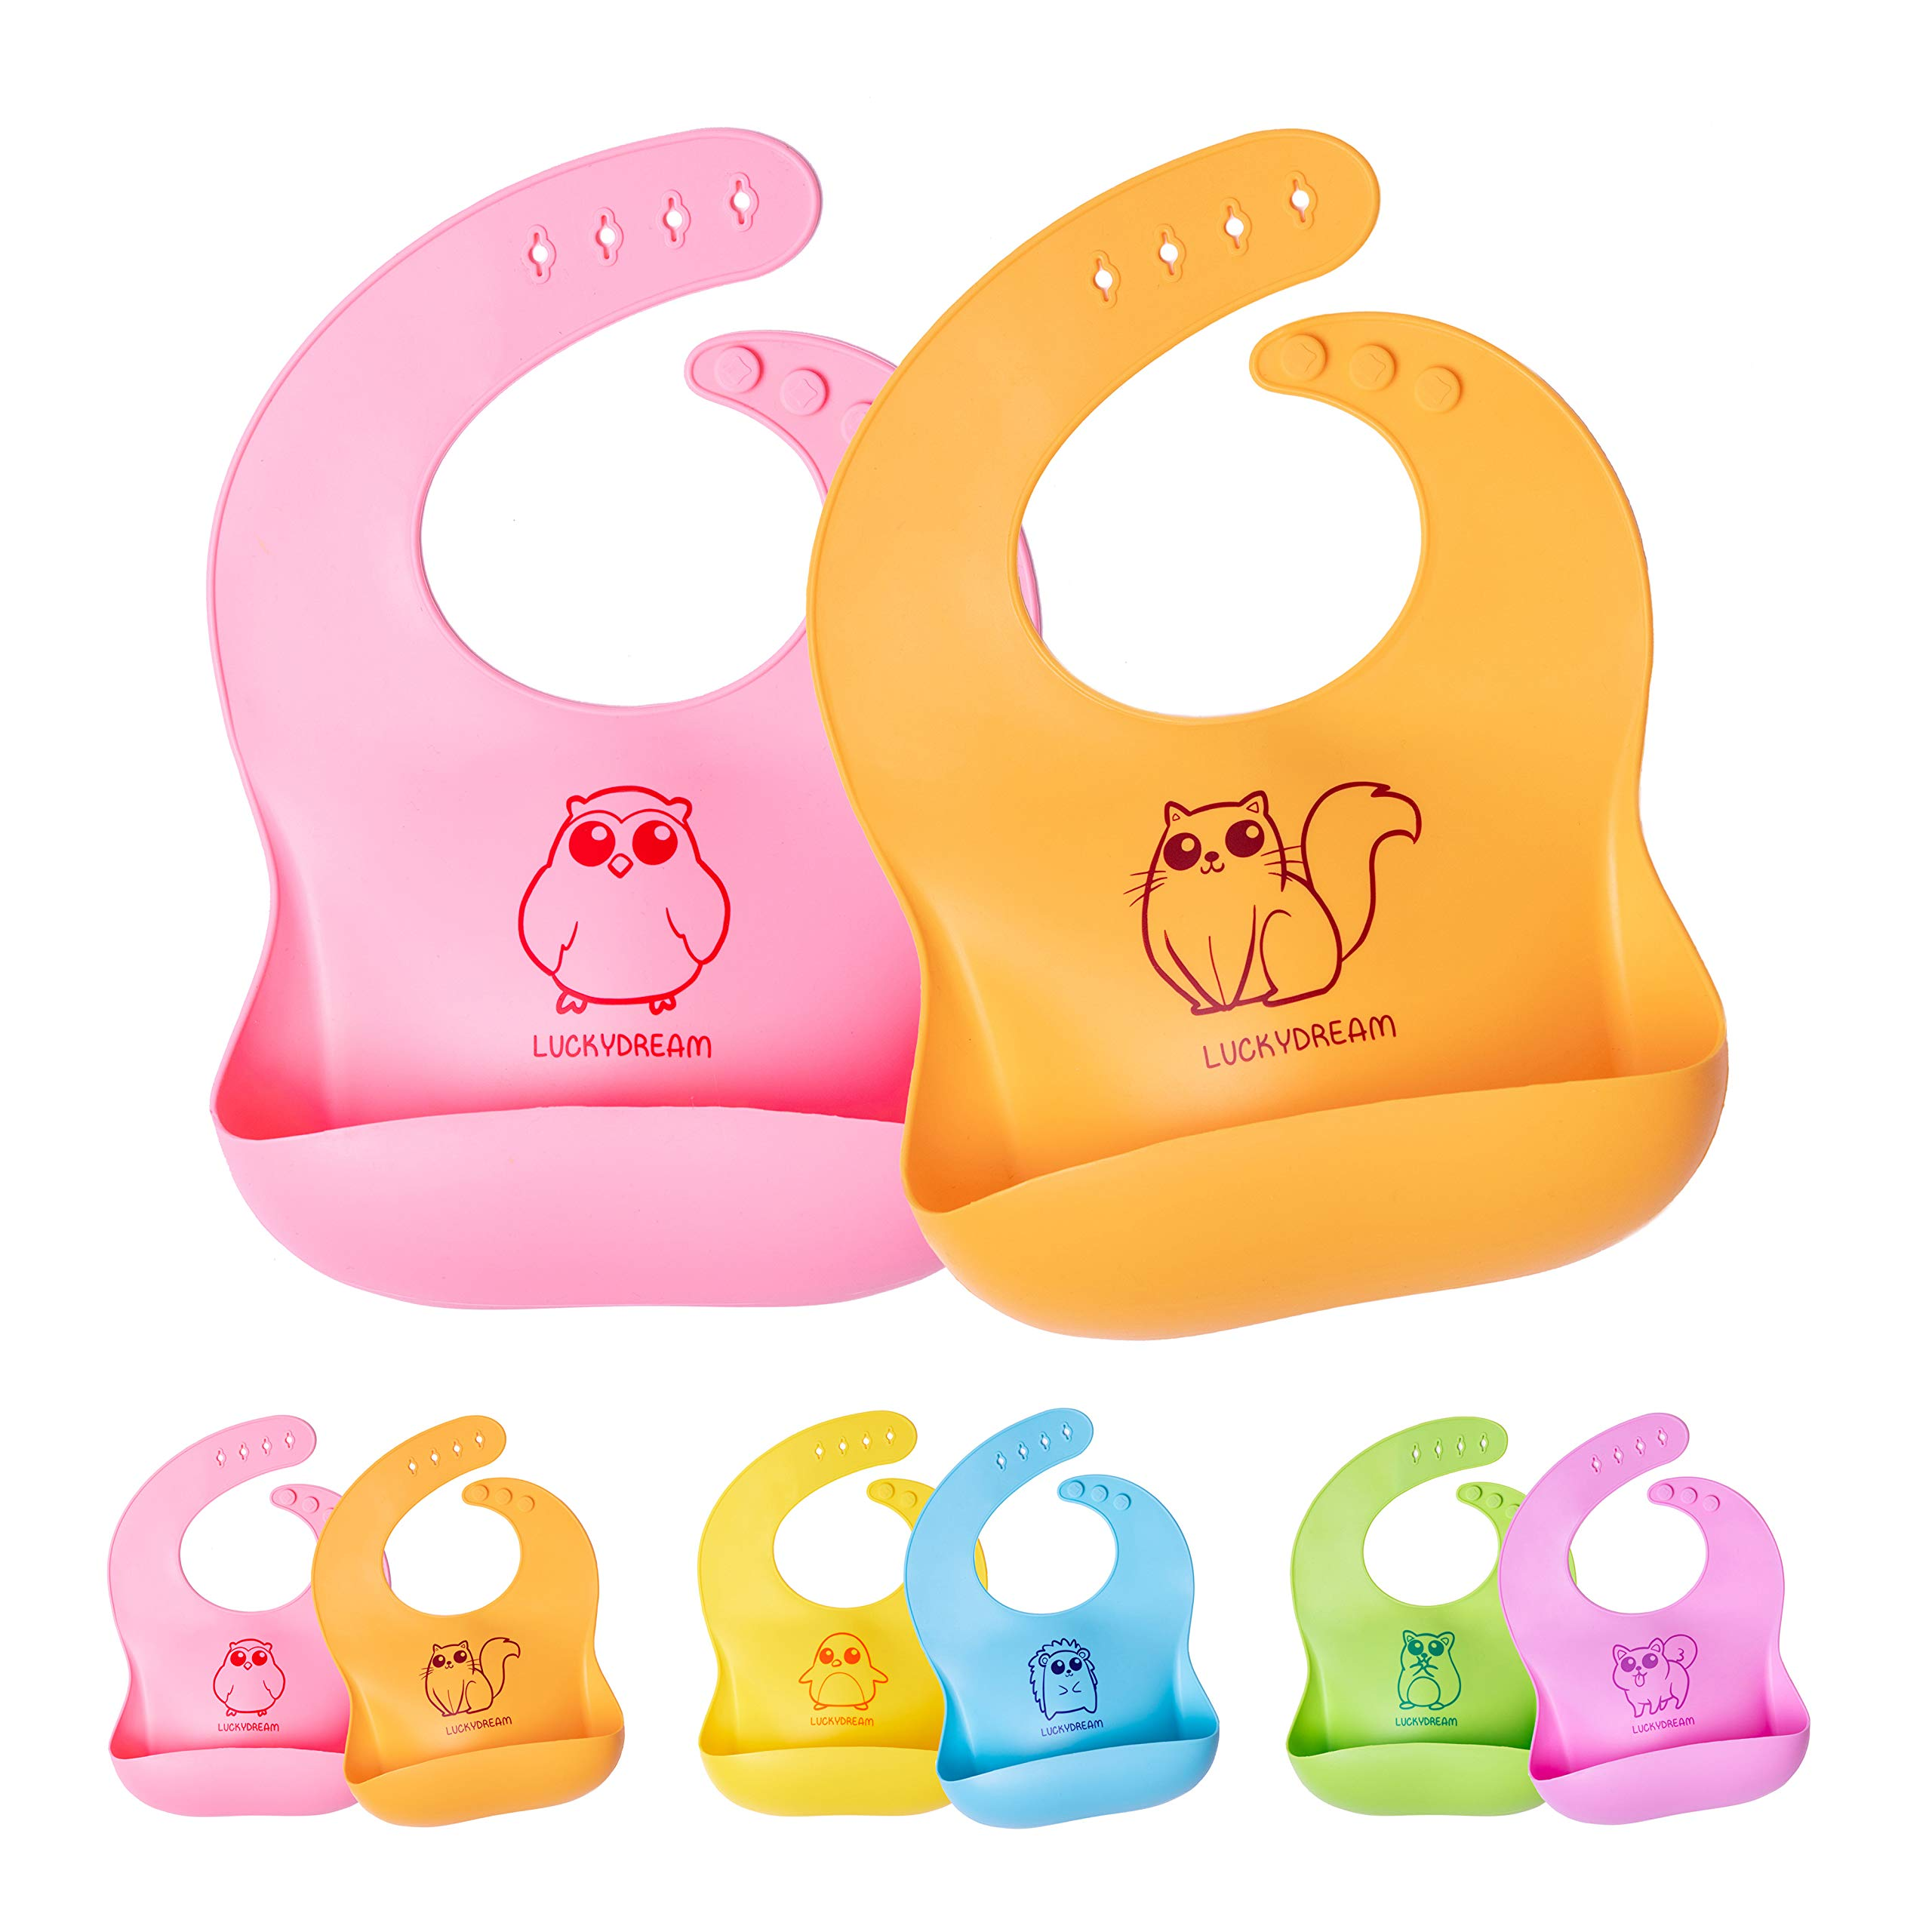 LuckyDream Premium Waterproof Silicone Bibs for Babies and Toddlers with Wide Stay Open Pocket - Set of 2 - Easy Clean, Soft, Comfortable Baby Bibs (Pink/Orange)